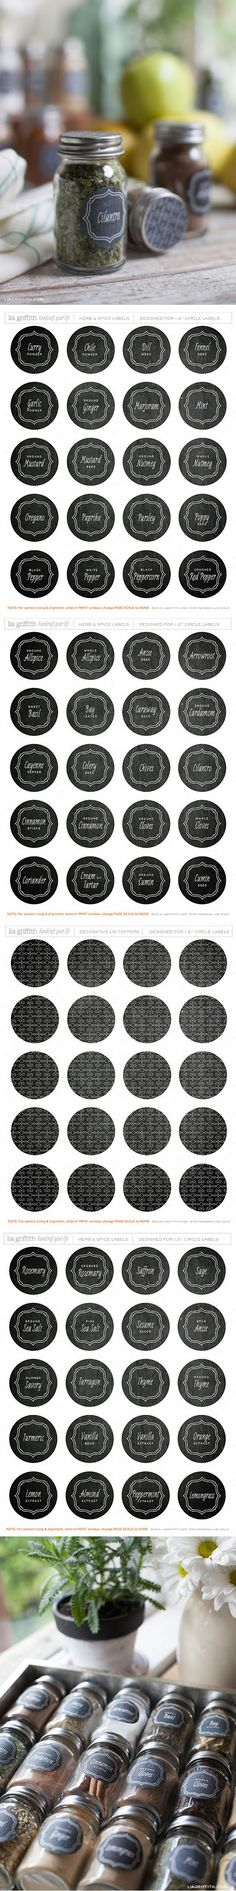 Free Printable Round Herb Spice Labels - used these today to spruce up my spice bottles - these are so cute with their faux-chalkboard paint look! This set has one of the biggest varieties of spice names that I've seen in a free set!